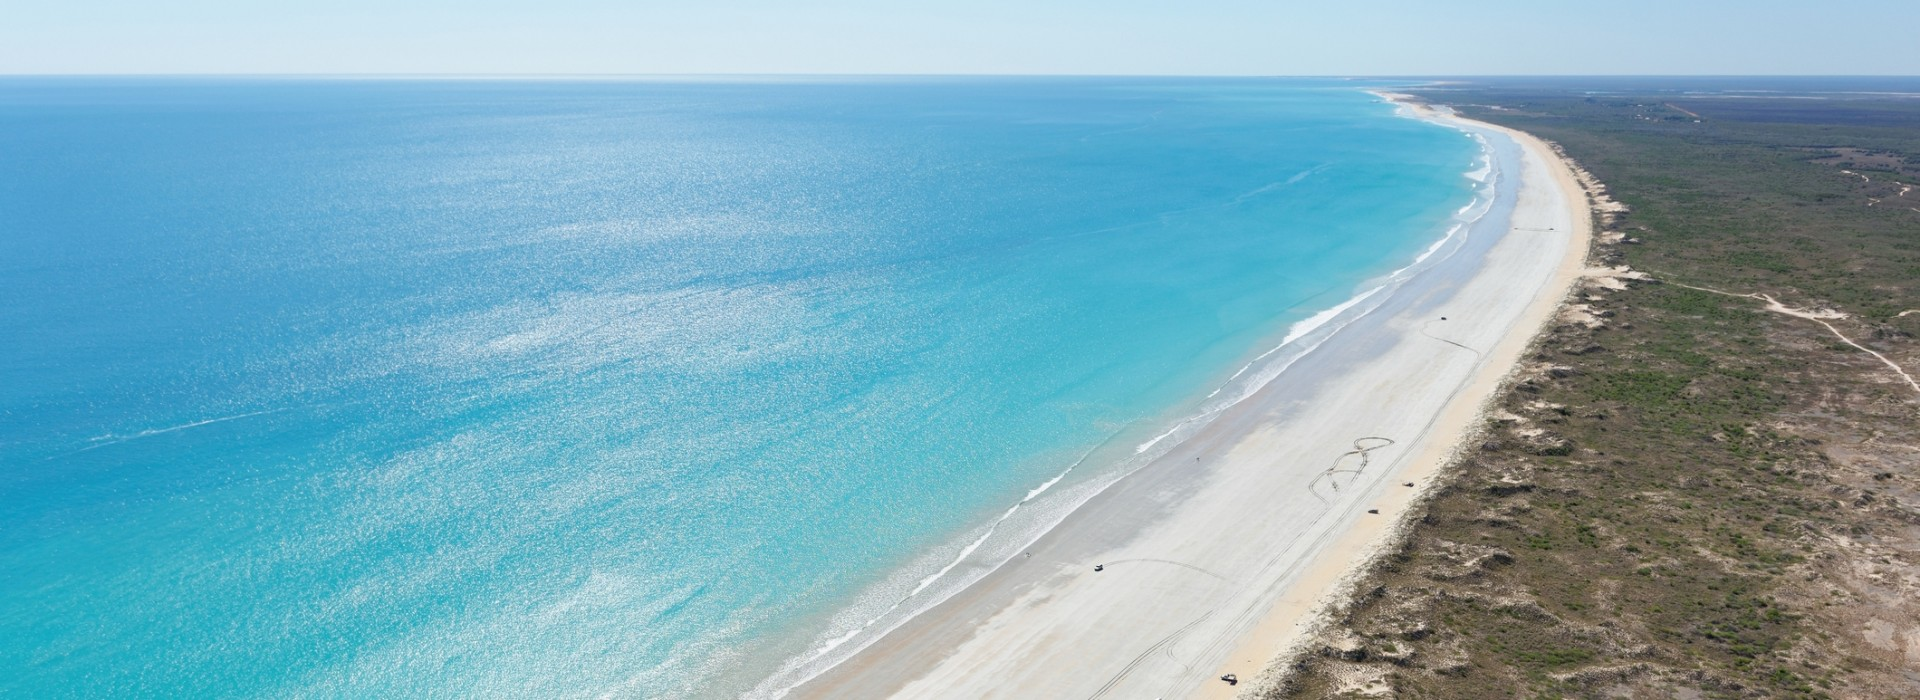 The 22 kilometer long stretch of Cable Beach in Broome has white, translucent sand.